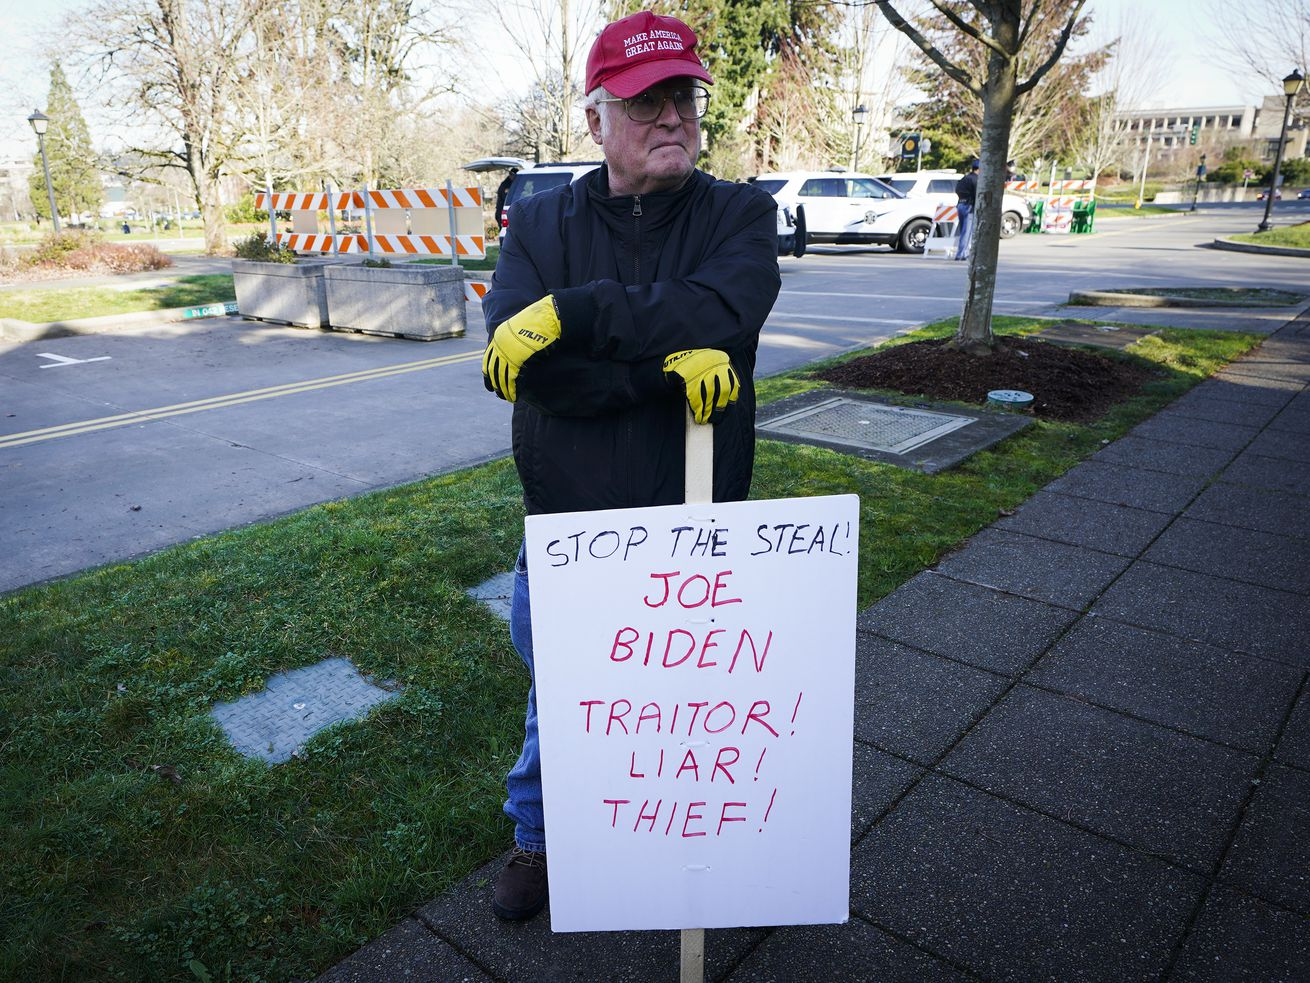 """A person wearing a MAGA hat stands on a sidewalk and leans on a sign that reads, """"Stop the steal. Joe Biden: Traitor! Liar! Thief!"""""""